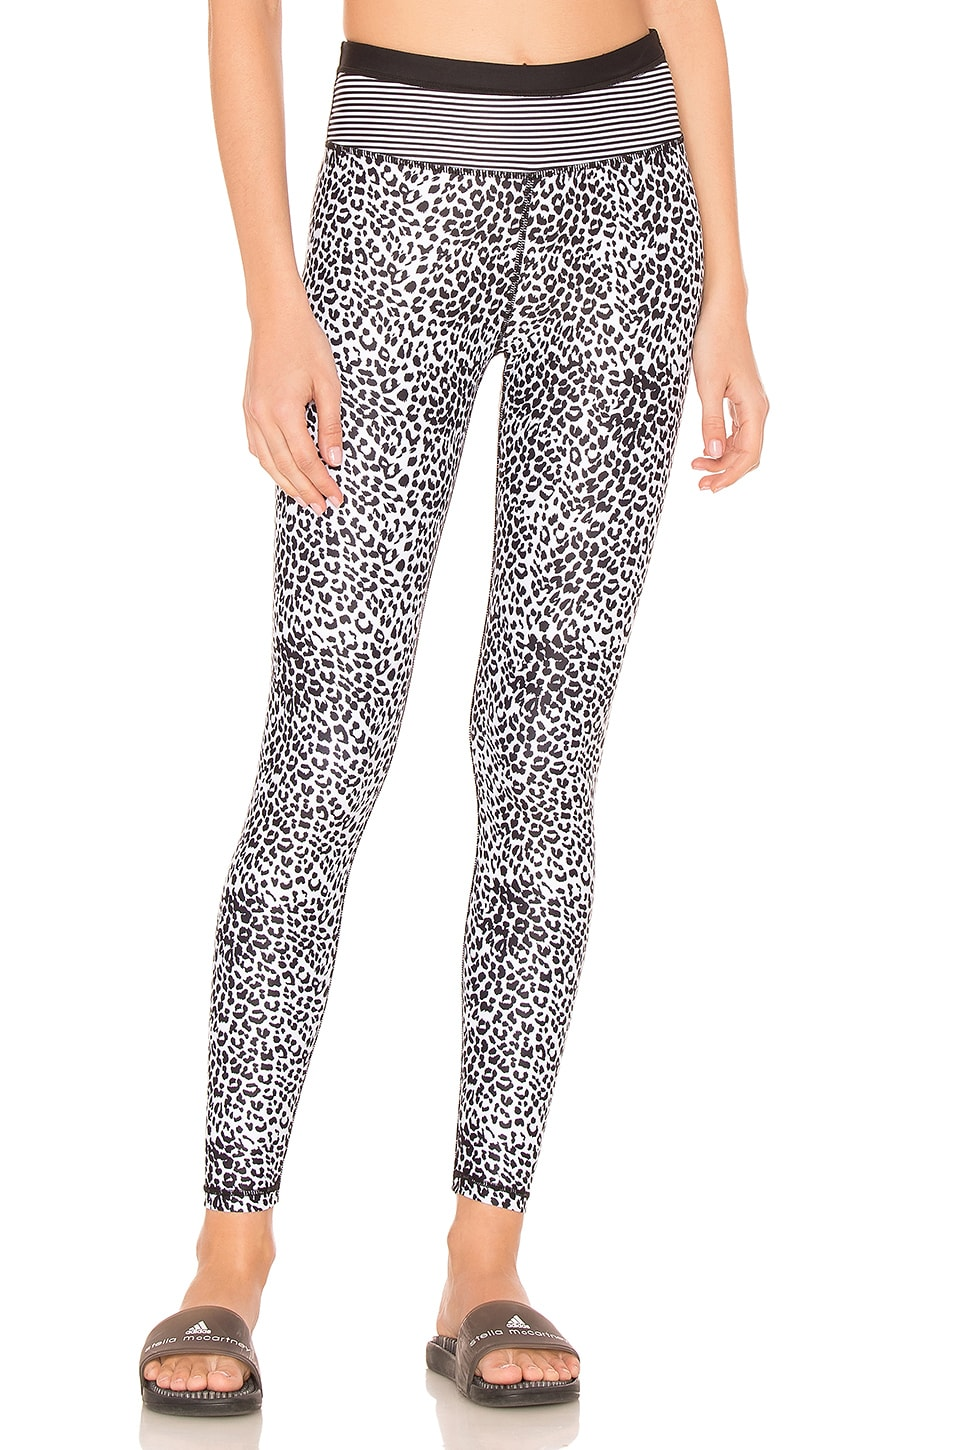 Striped Leopard Legging